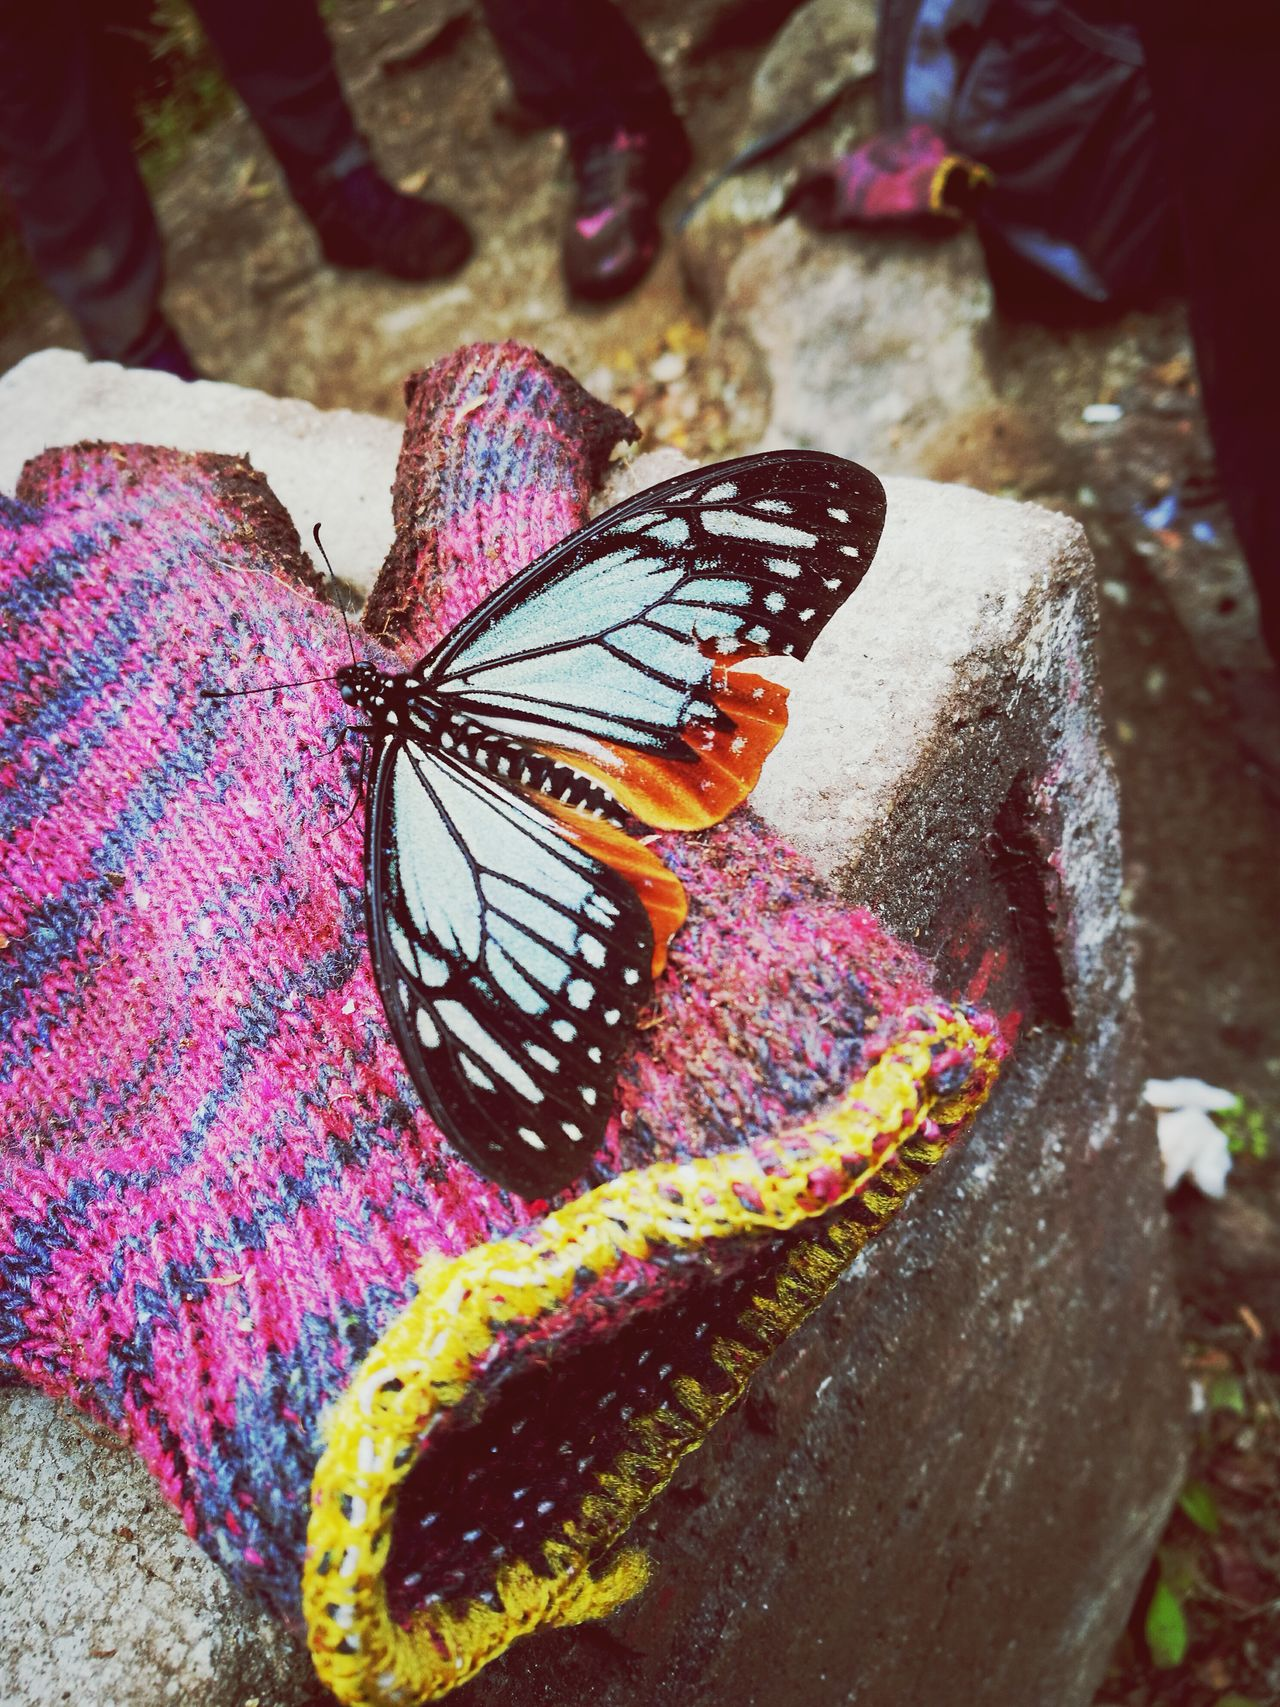 Butterfly - Insect One Animal Close-up Outdoors Multi Colored Fabric Insect